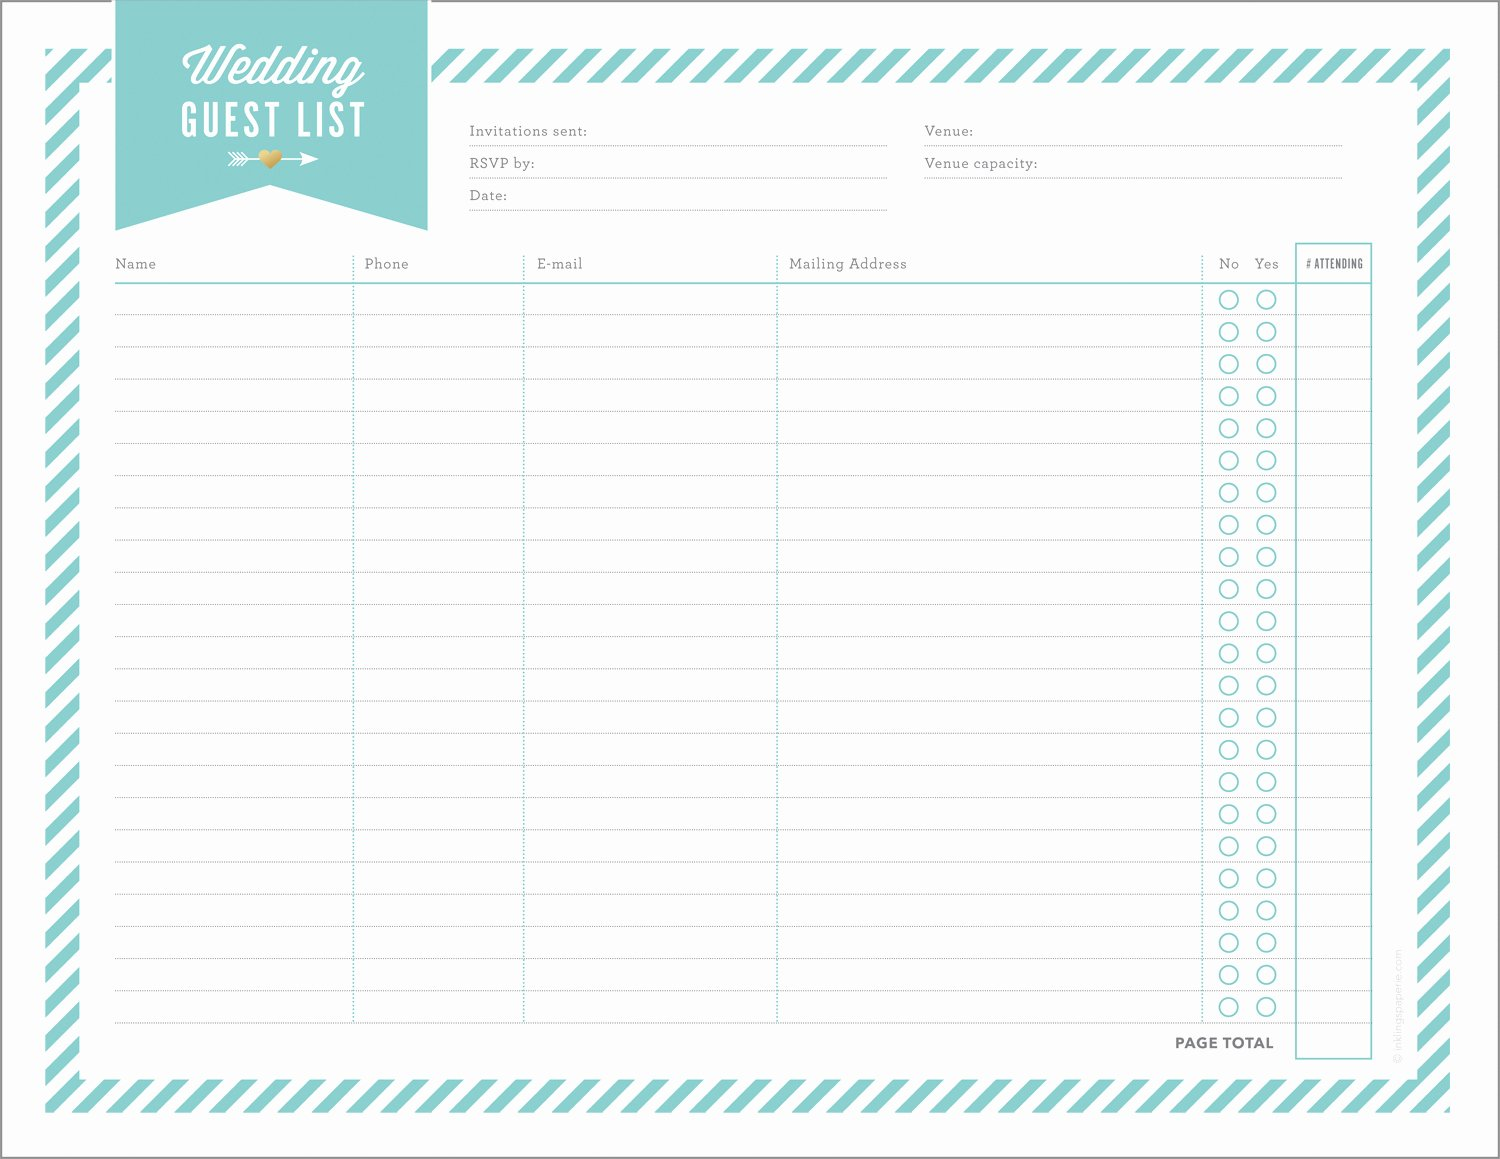 Printable Wedding Guest Lists Lovely Free Wedding Planning Printables & Checklists